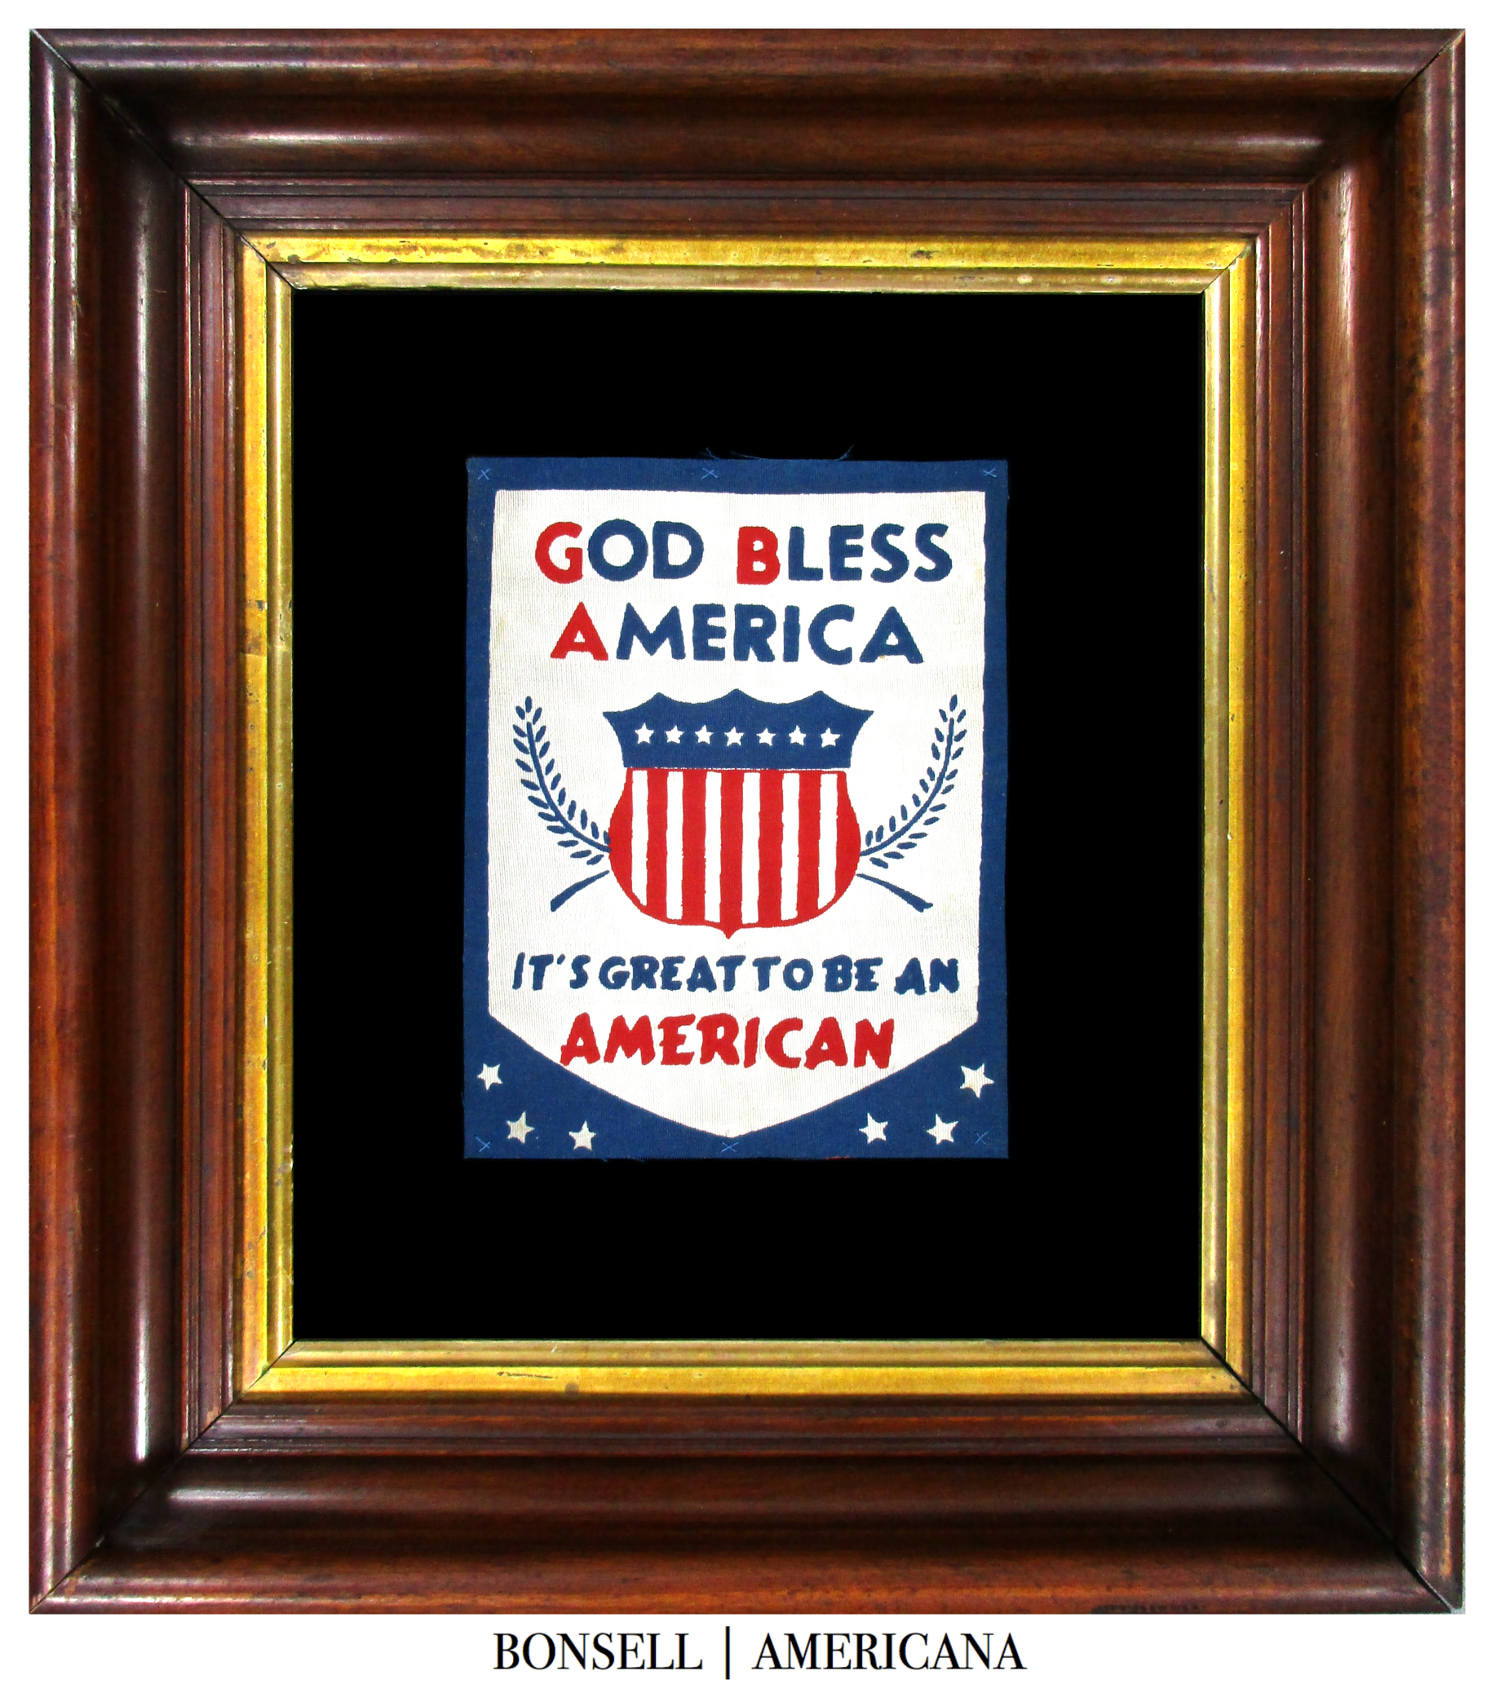 Coming Soon: Antique God Bless America Banner | Includes the Slogan It's Great to Be an American